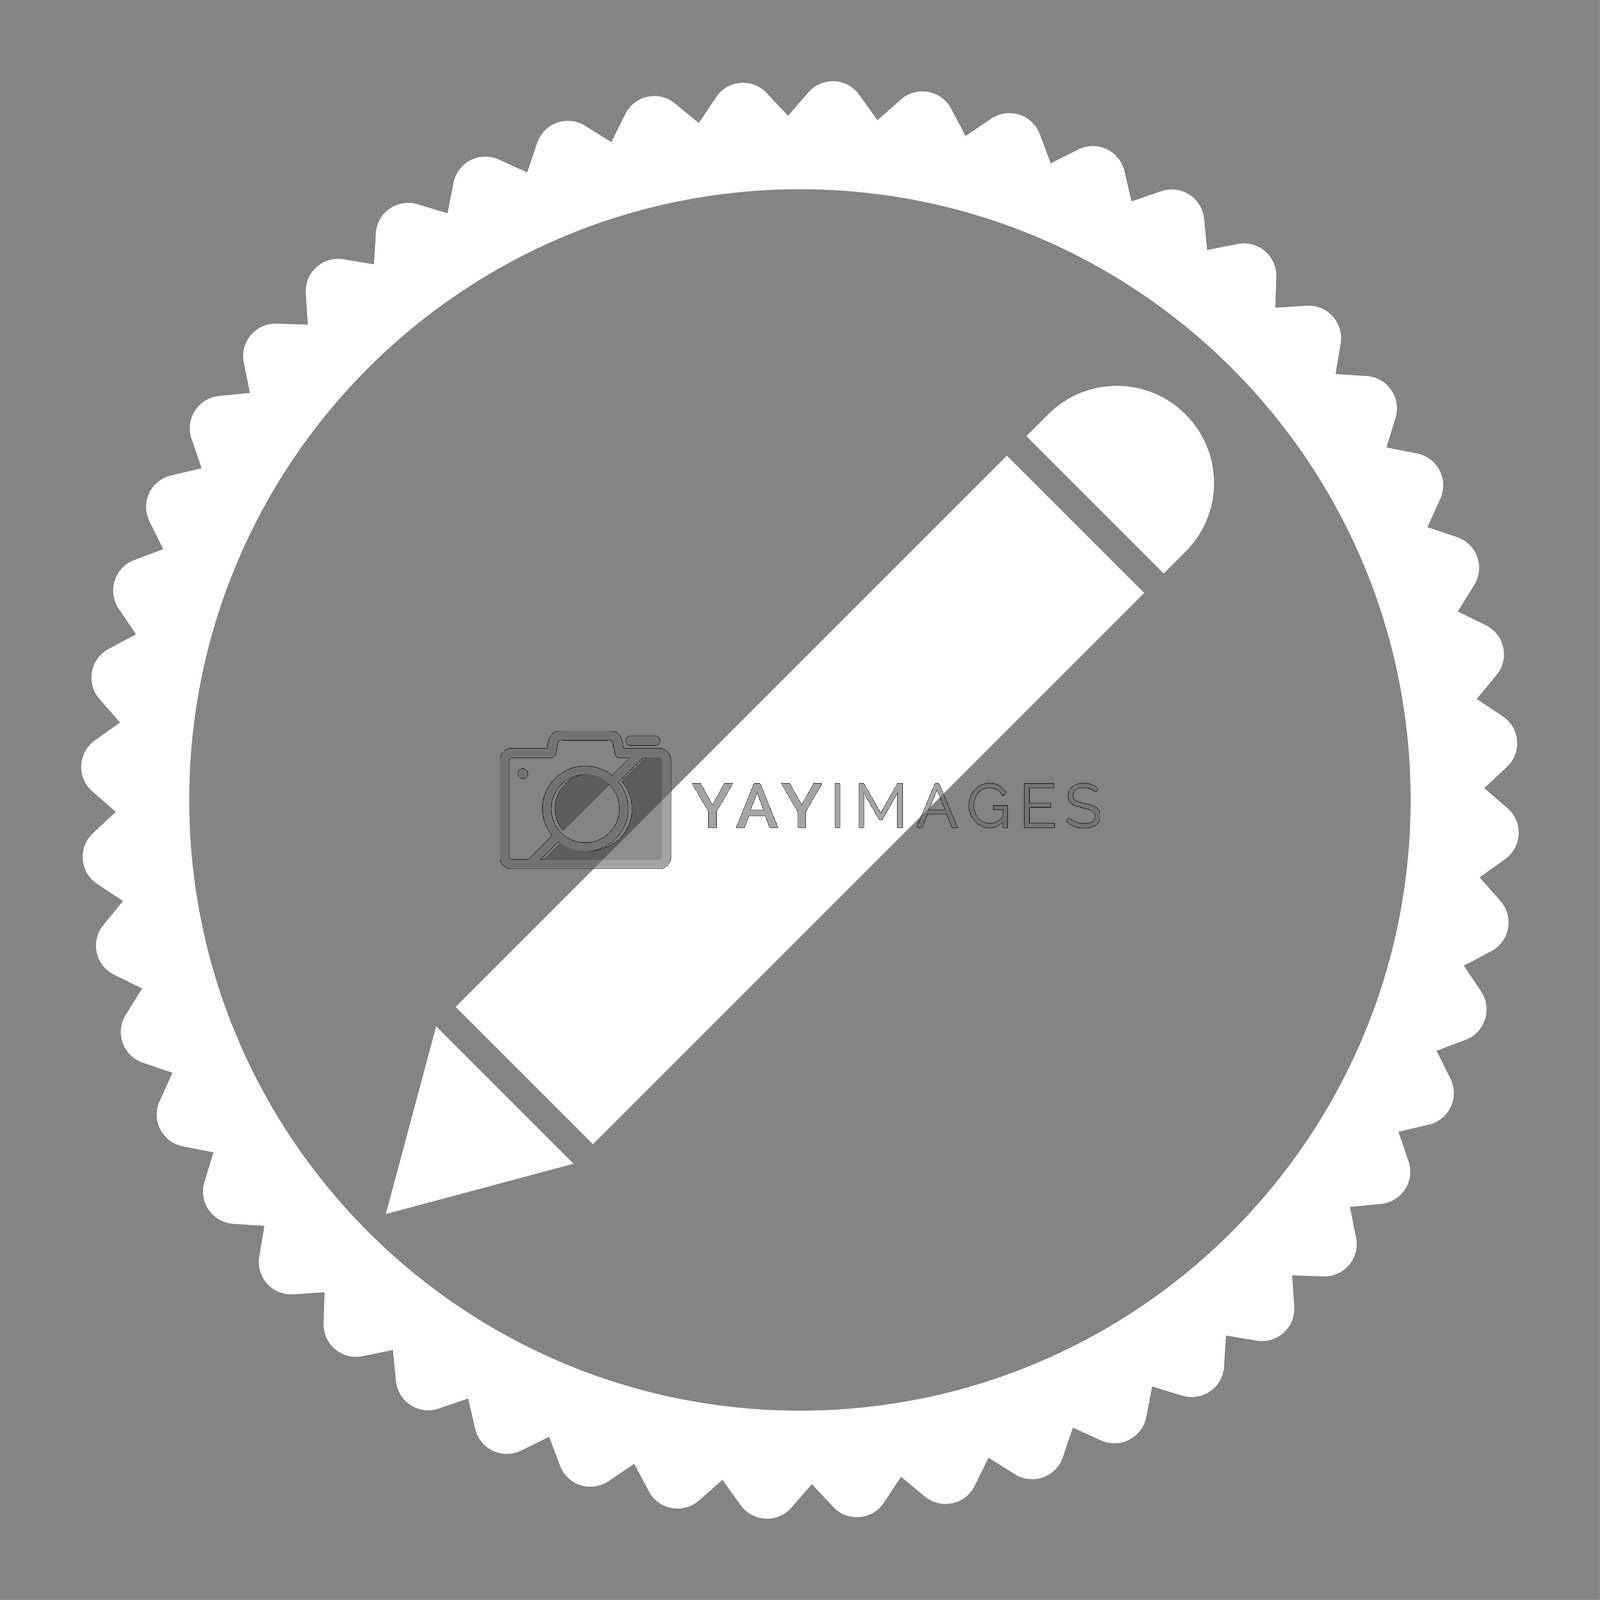 Pencil flat white color round stamp icon by Aha-Soft